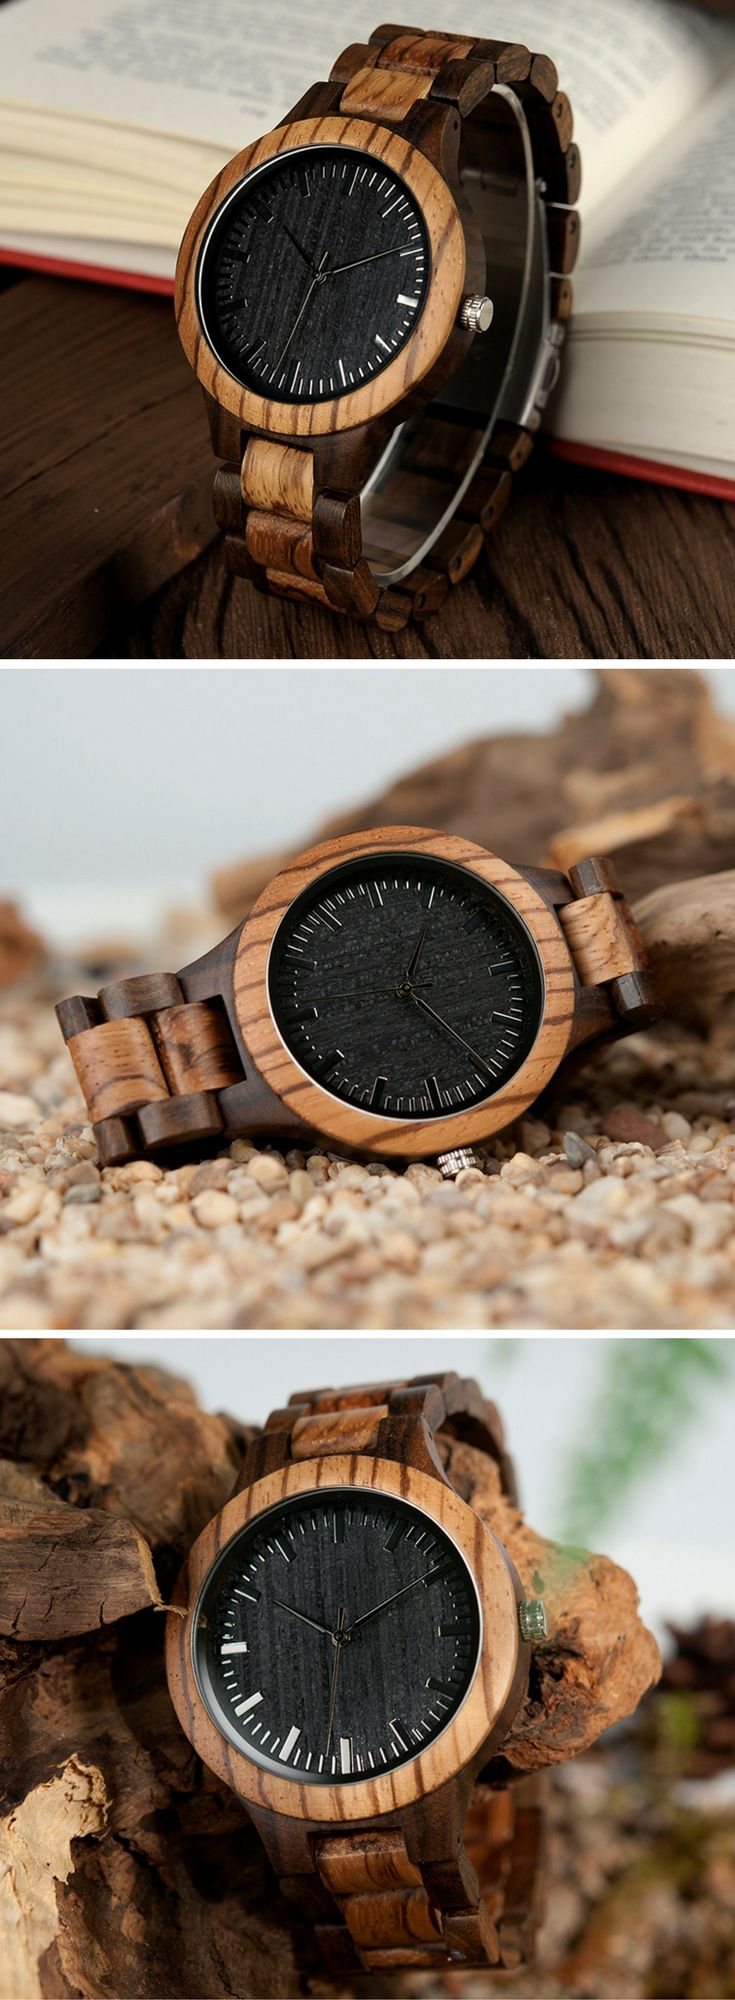 A classy men's watch made from premium zebra wood and ebony wood   men's watch affordable, men's watches affordable, watch for men affordable, watches for men affordable, affordable watch, affordable watch for men, affordable watch collection, affordable